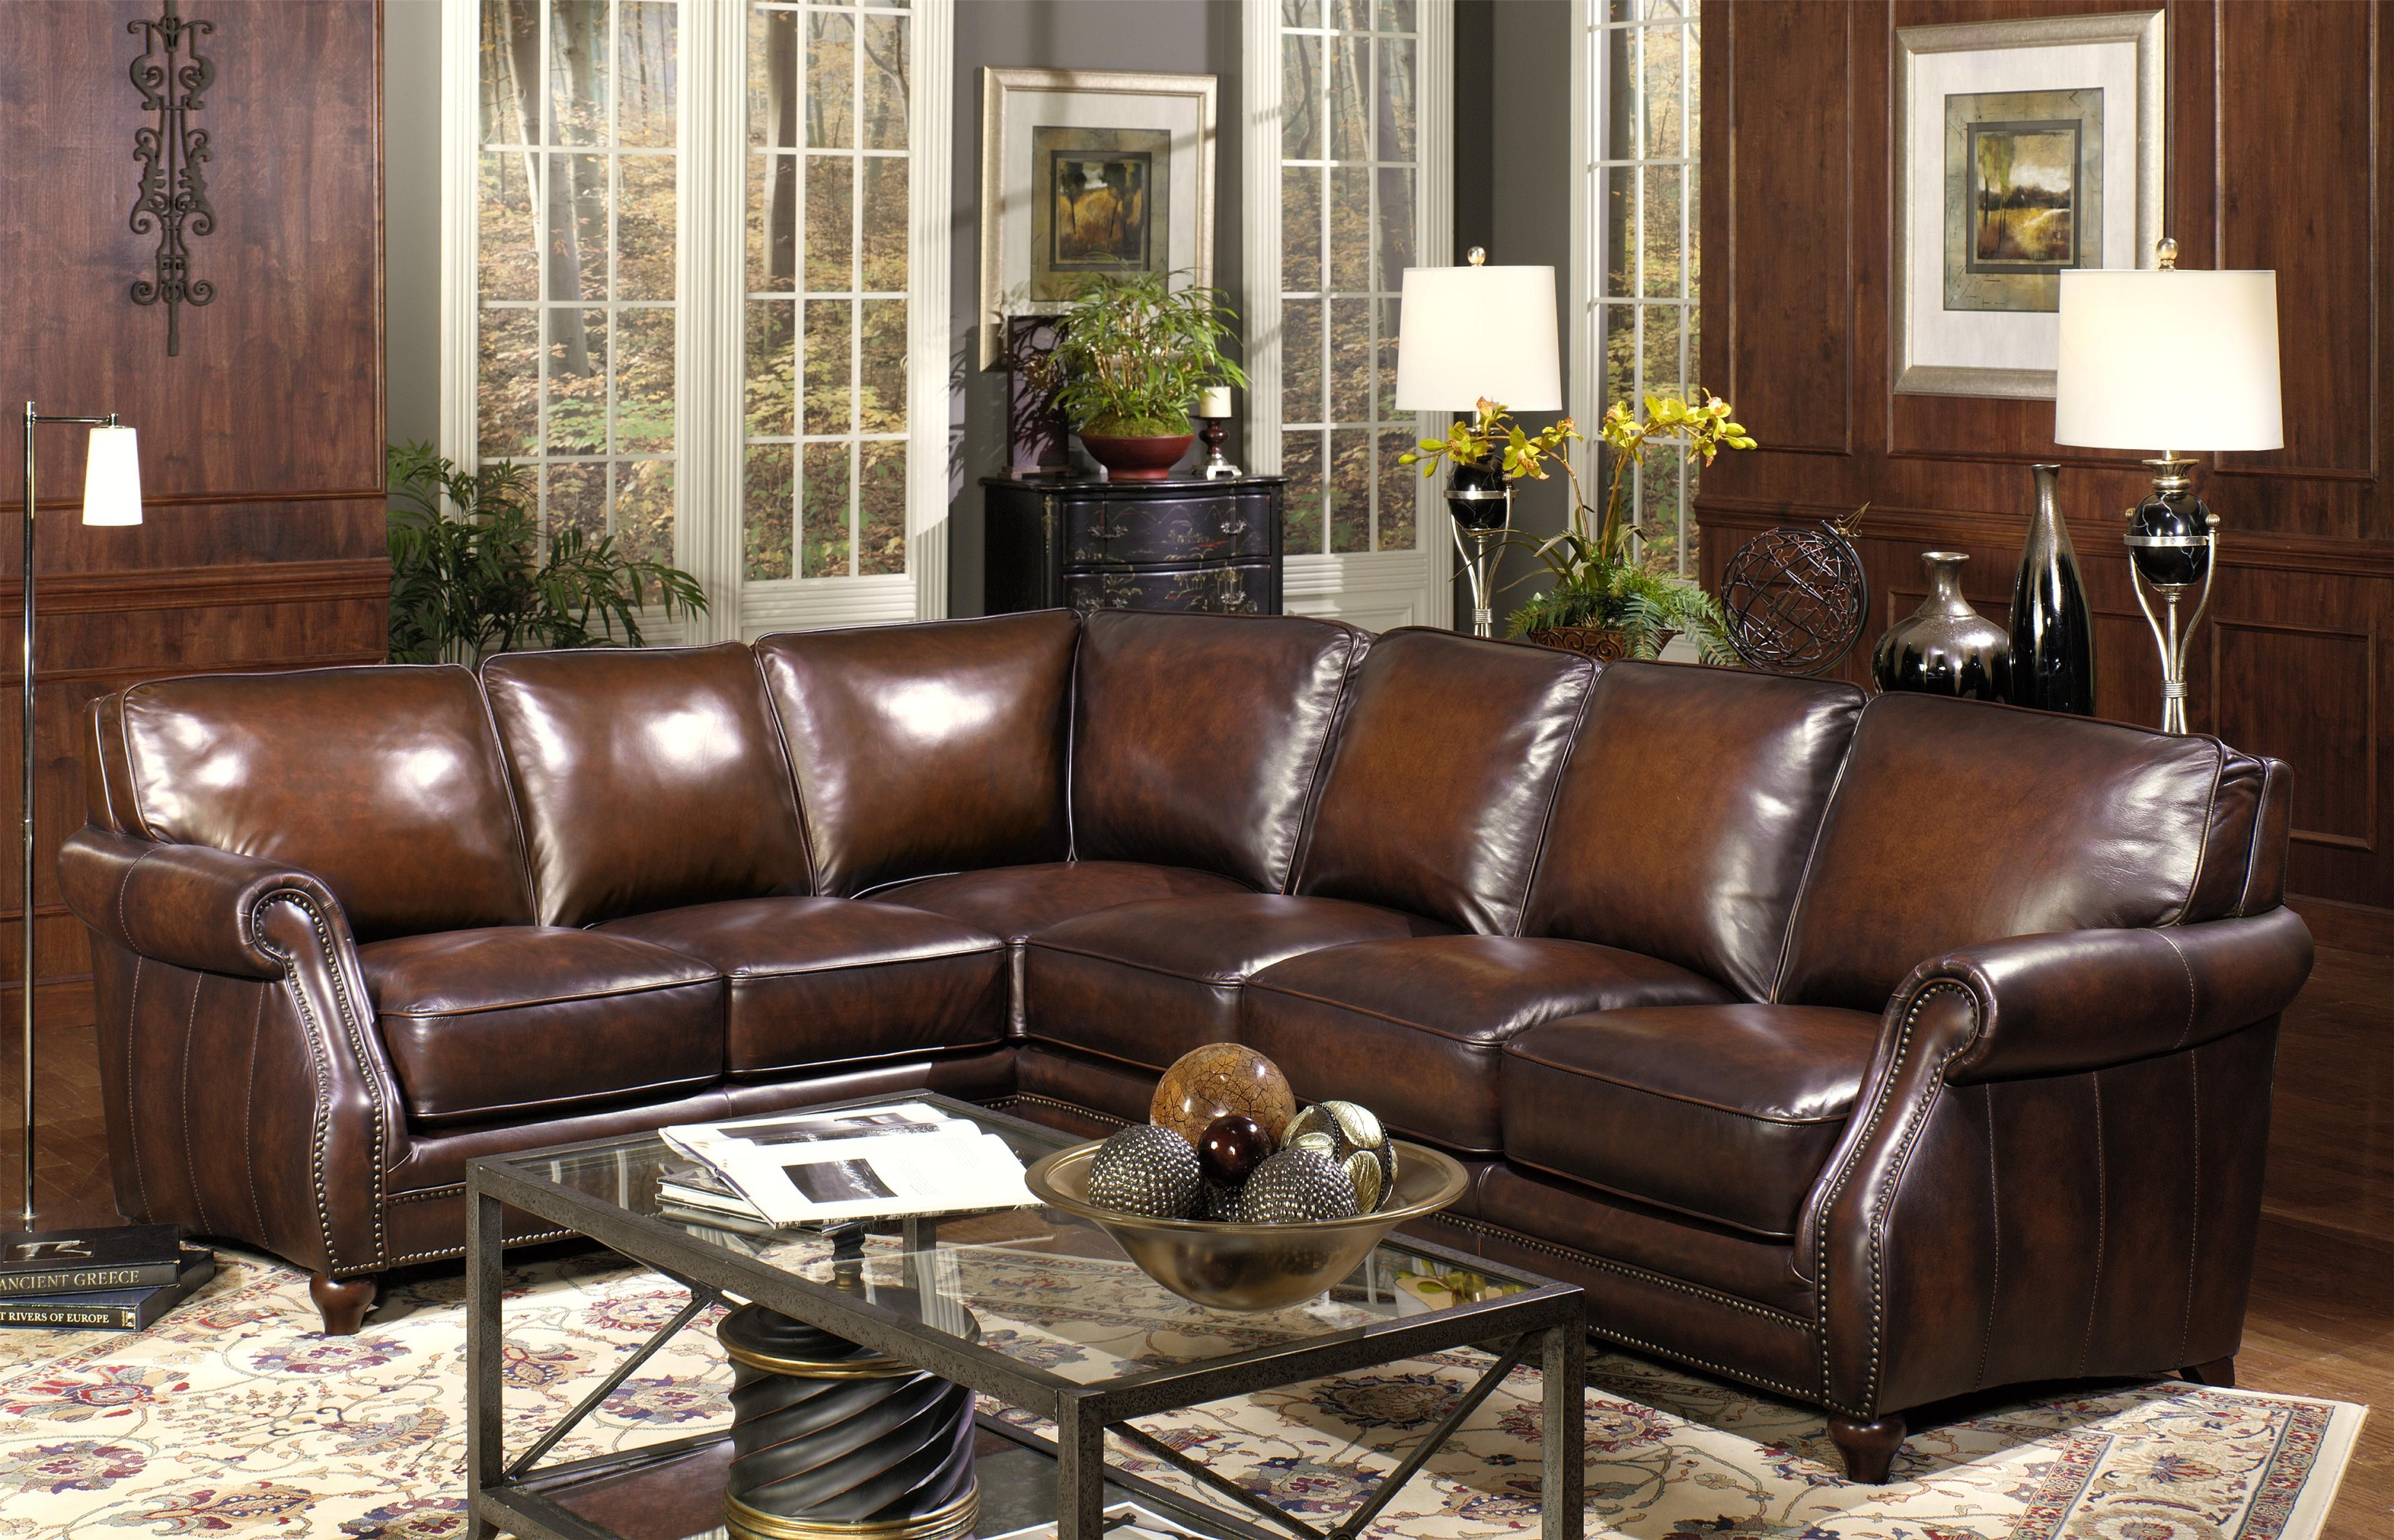 Traditional Two Piece Leather Sectional Sofa With Rolled Arms And Nailhead  Trim